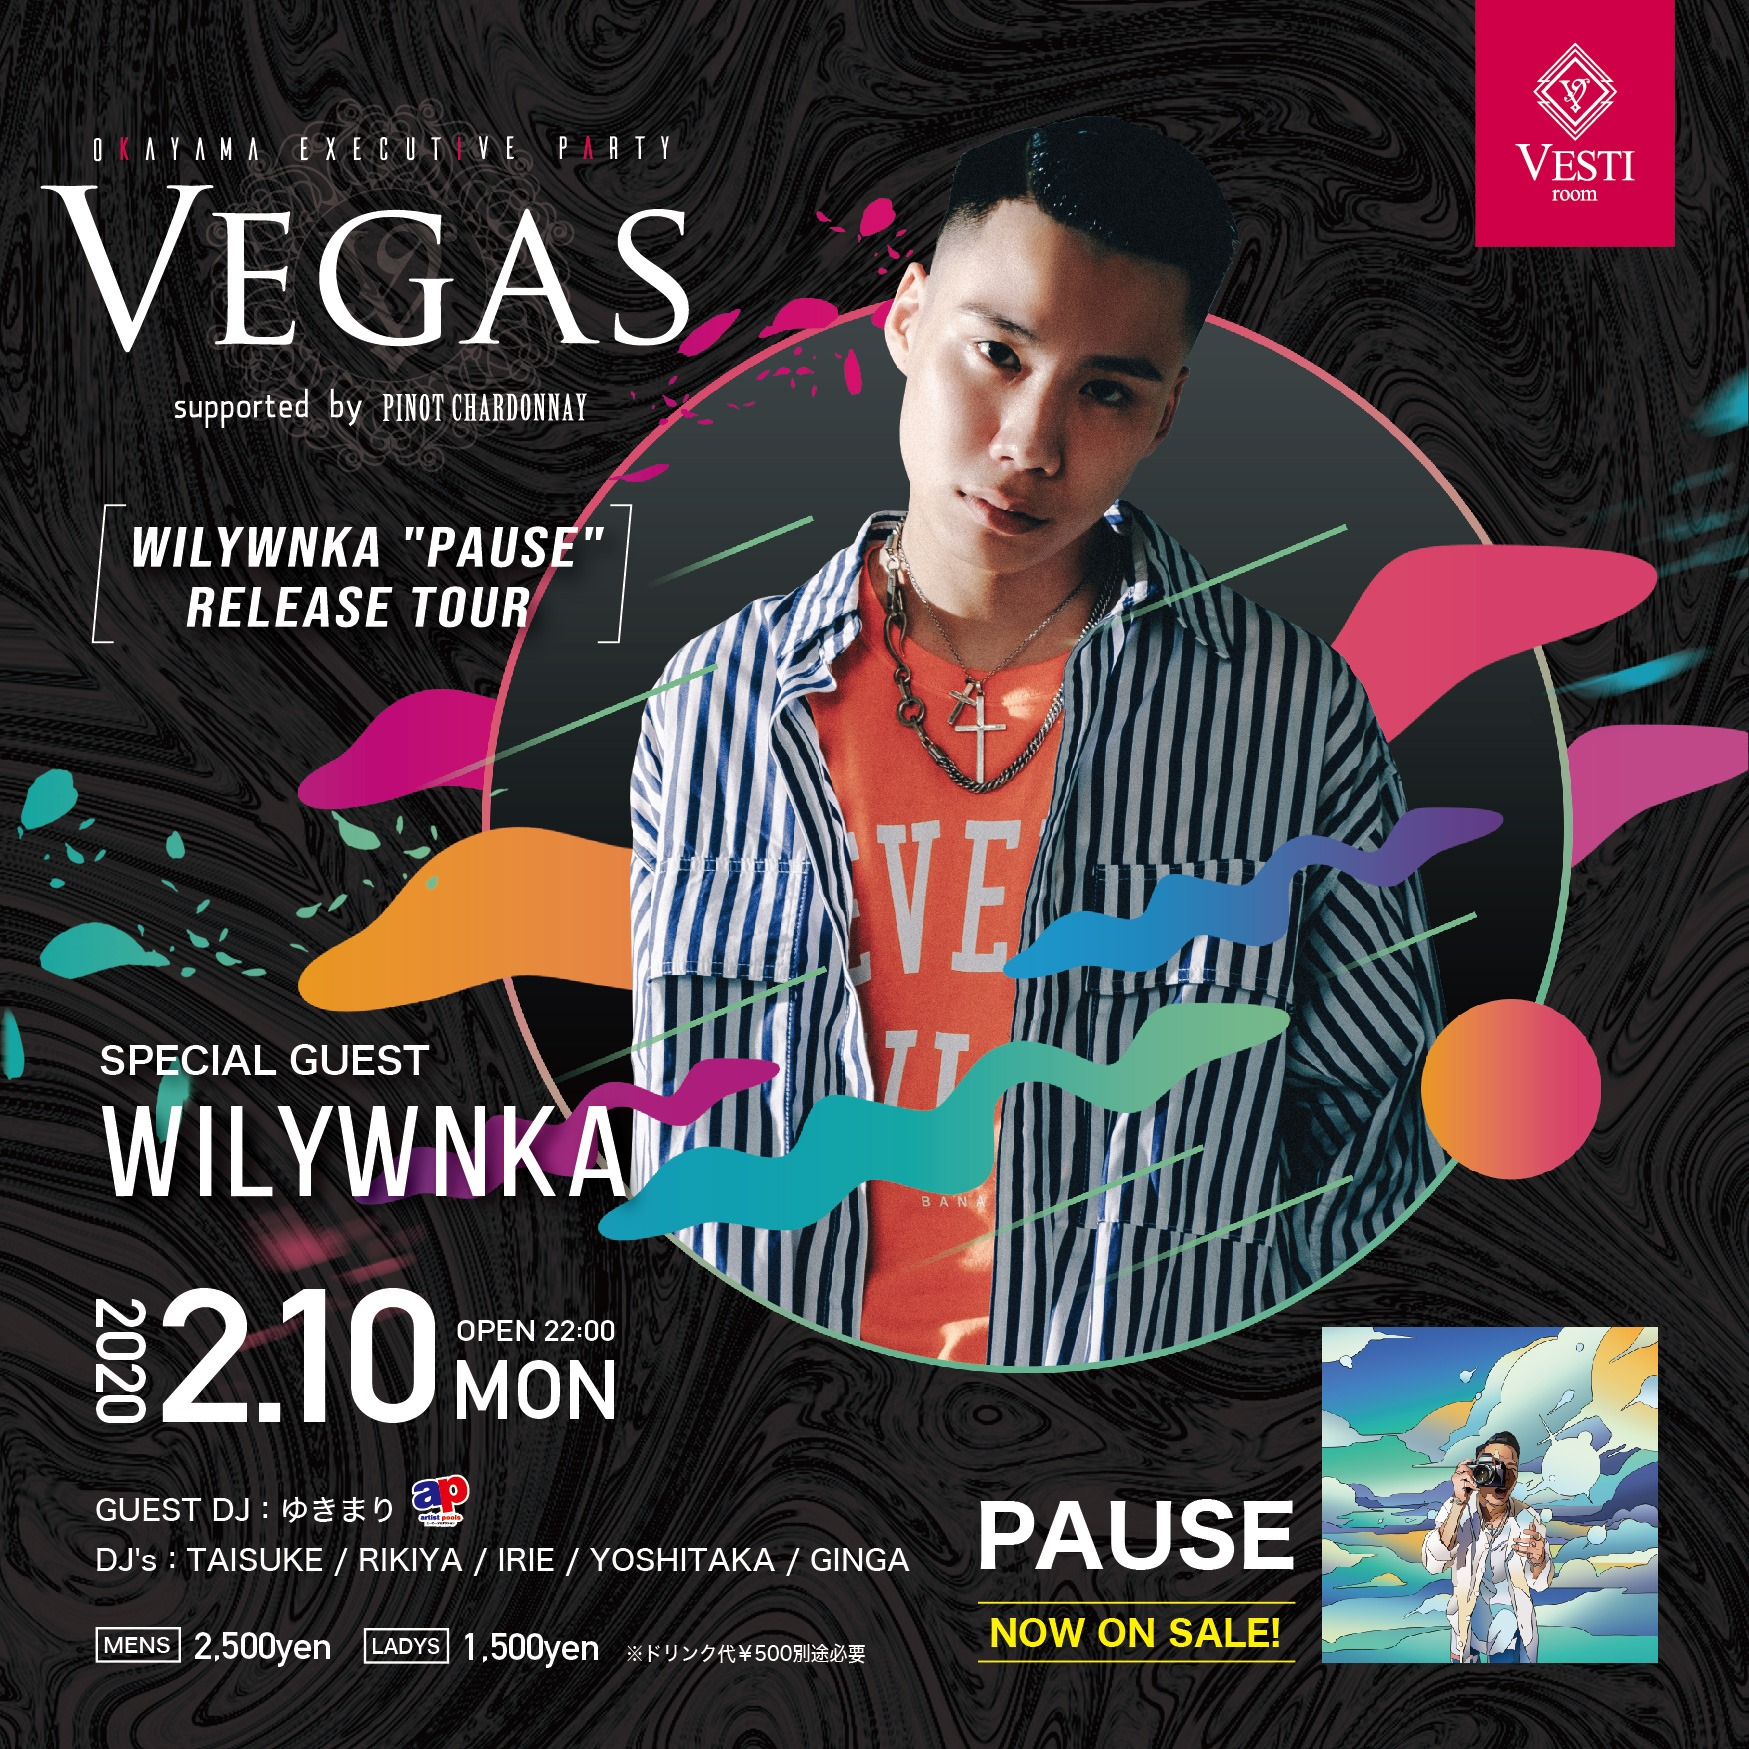 VEGAS 〜Special Guest WILYWNKA〜